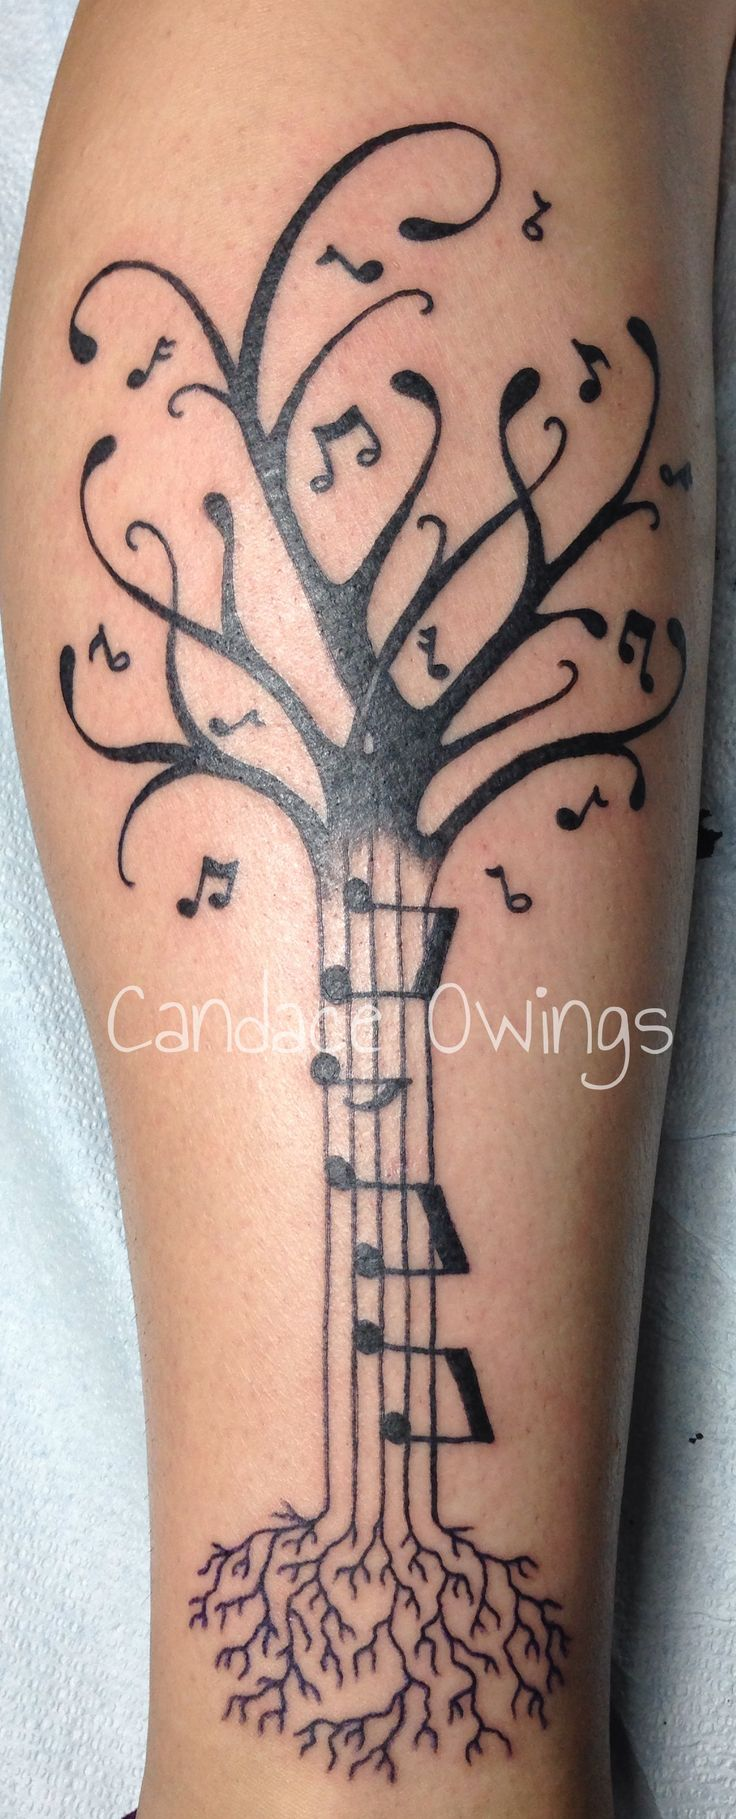 Really fun tattoo I did of a music tree with music notes for leaves and the trunk, on the side of a calf. Still one of my favorite pieces so far :)